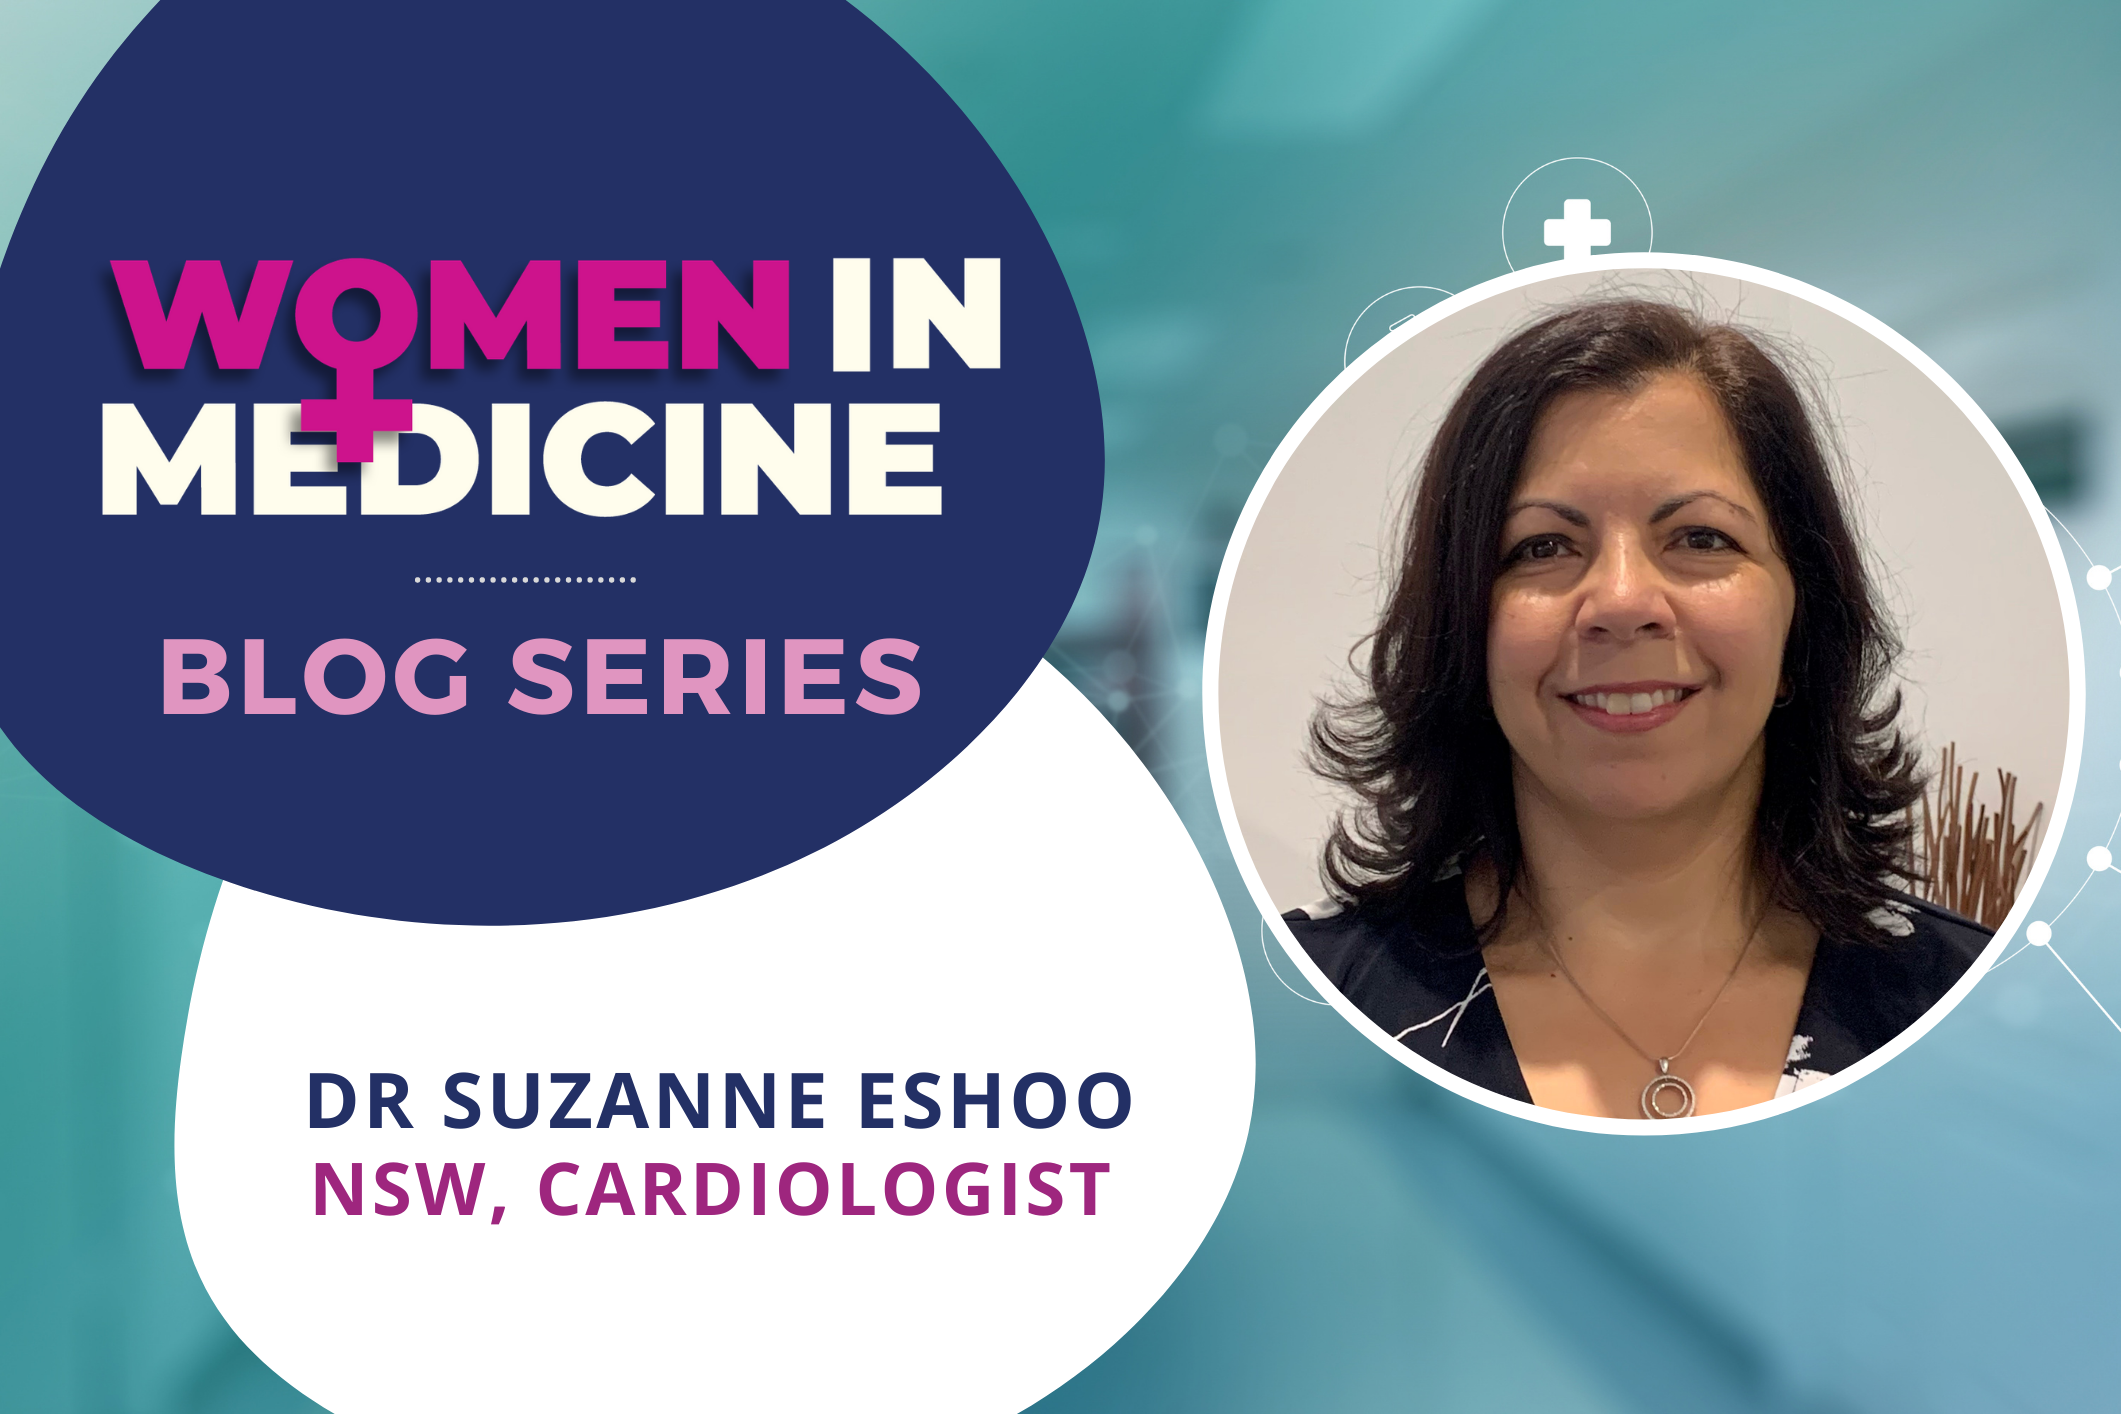 Women in Medicine Series - Spotlight on NSW Cardiologist, Dr Suzanne Eshoo Image